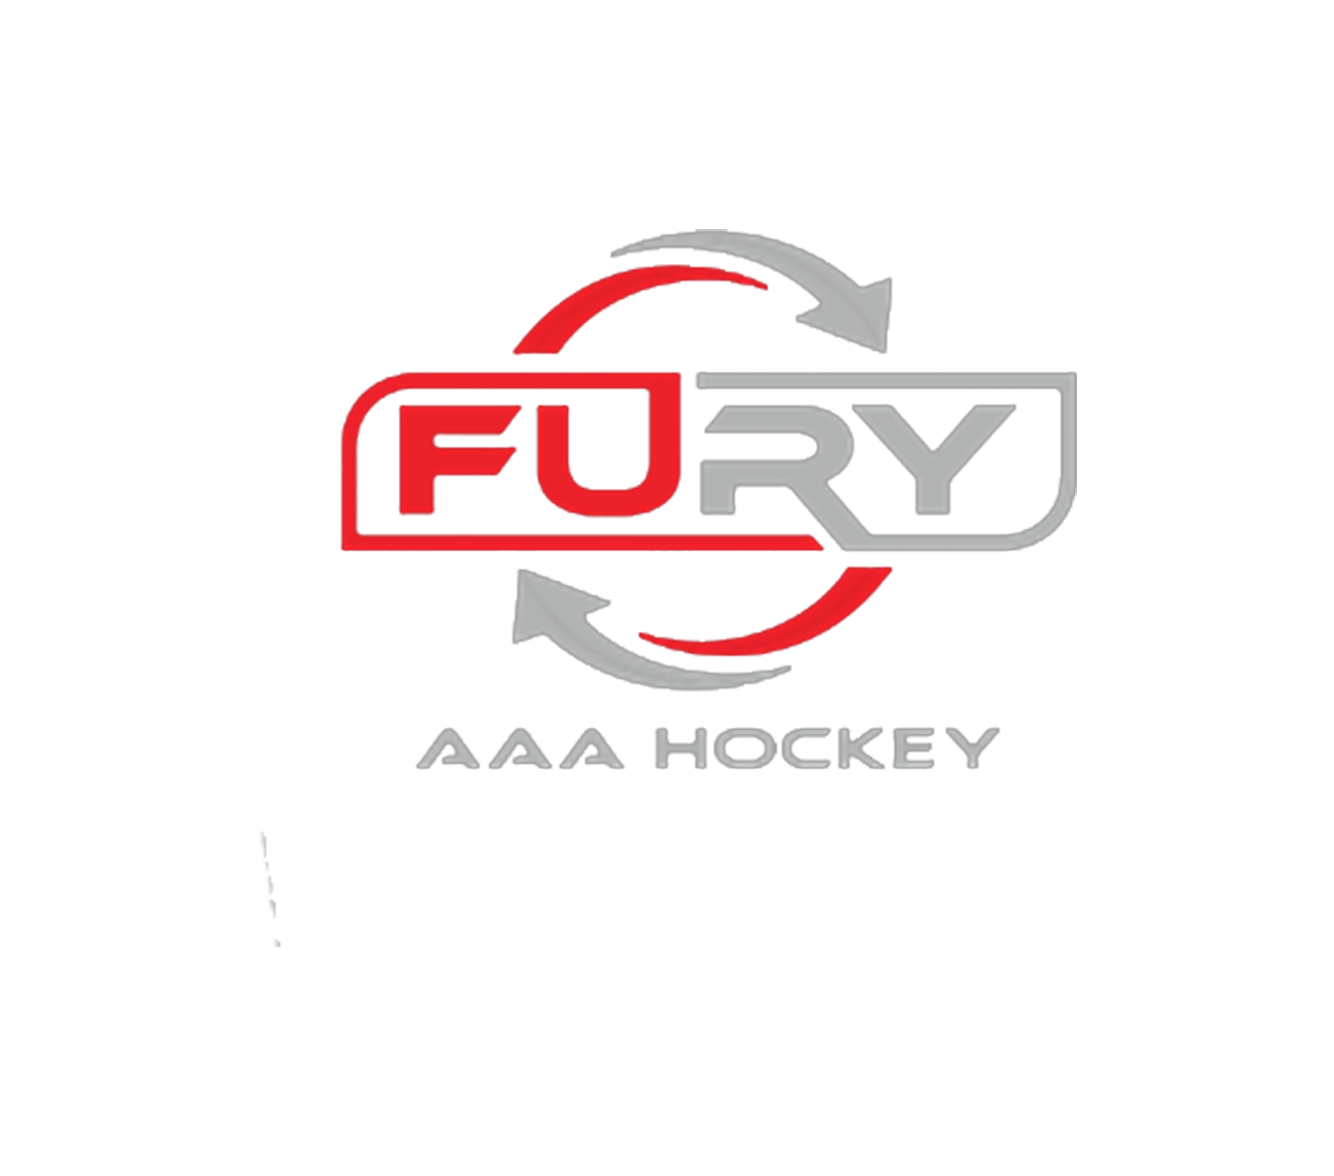 Fury AAA Hockey 2020